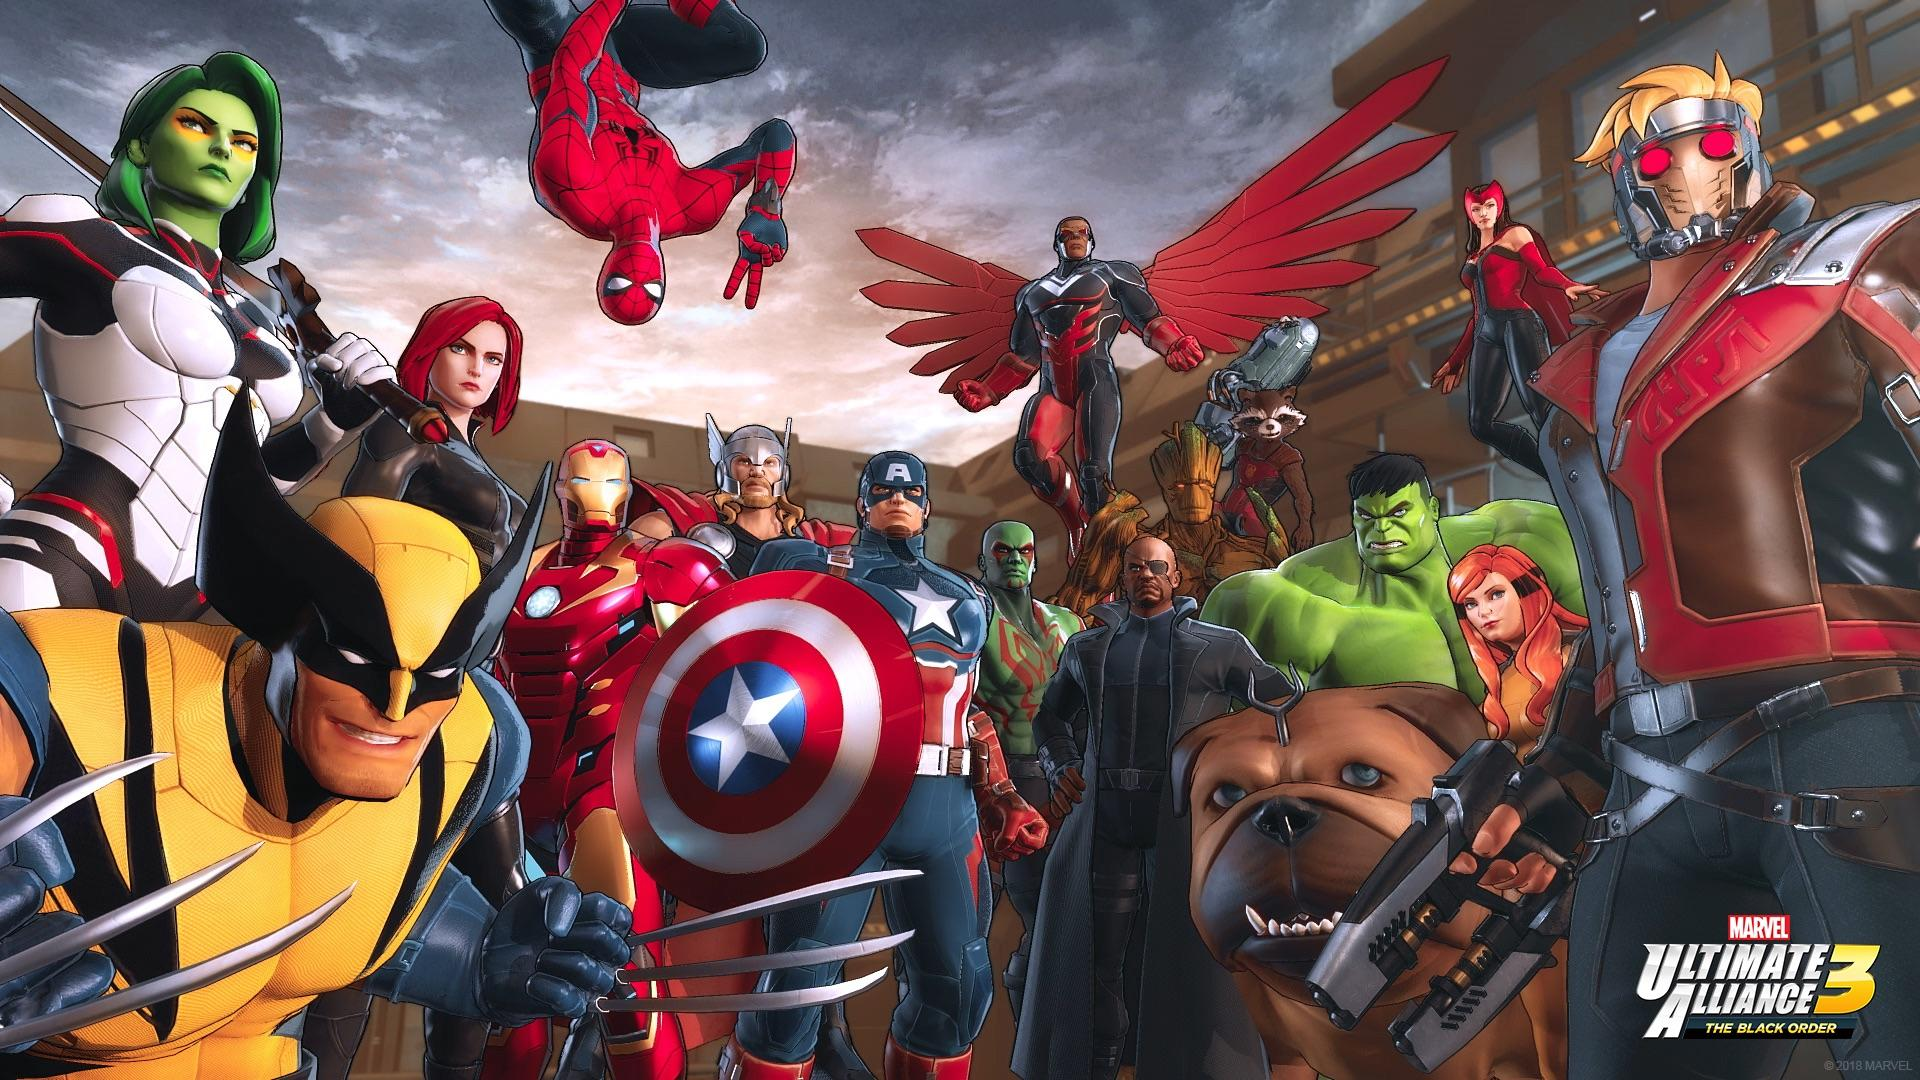 Marvel Ultimate Alliance 3- Group Shot